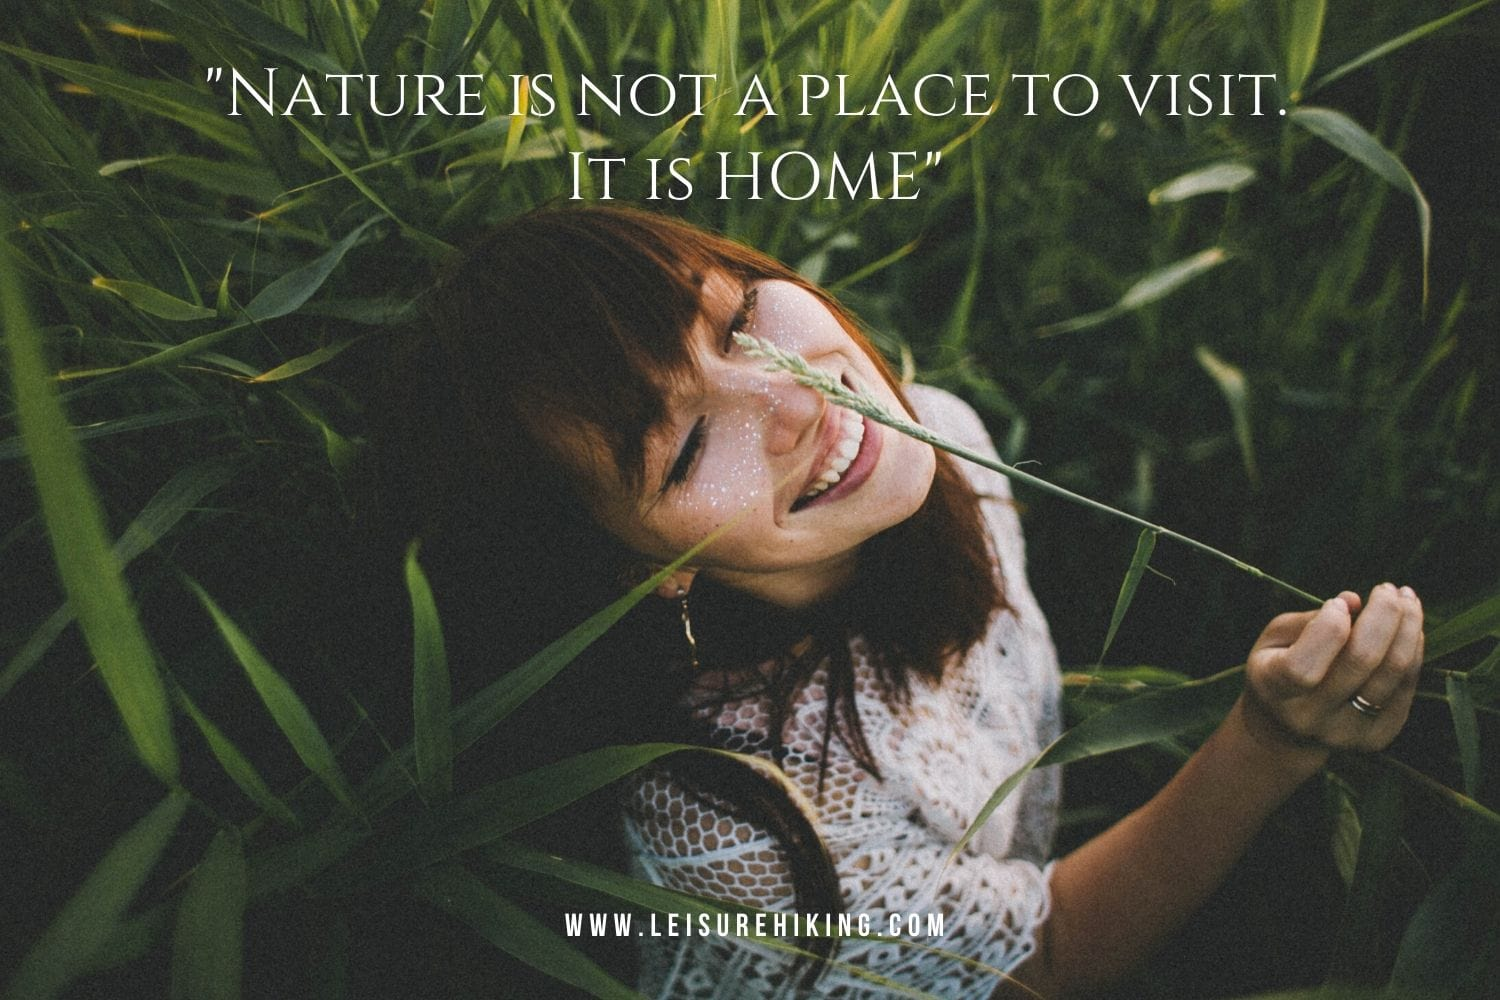 A woman is enjoying nature